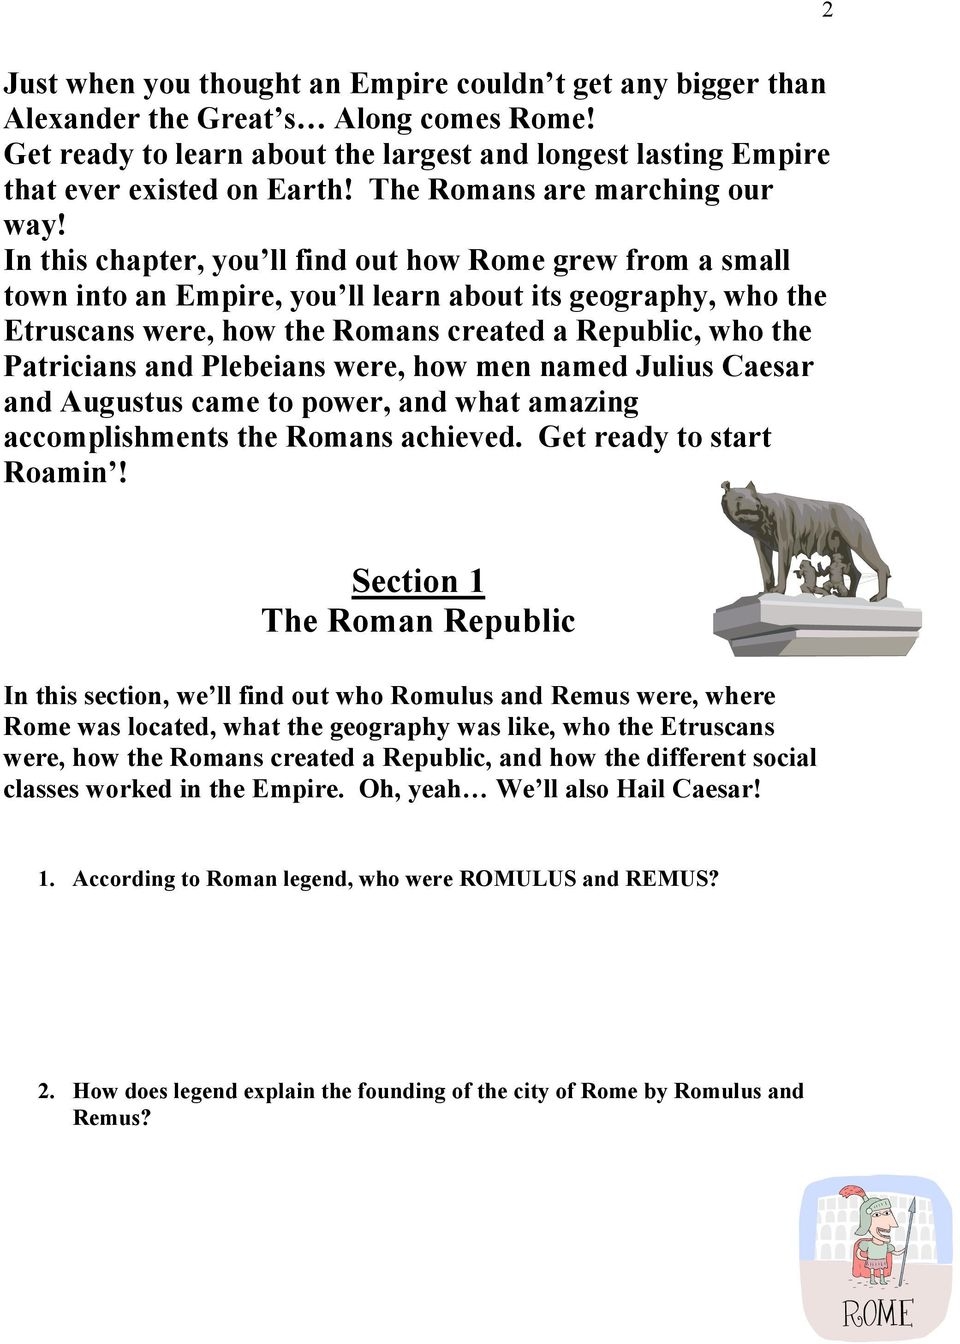 In this chapter, you ll find out how Rome grew from a small town into an Empire, you ll learn about its geography, who the Etruscans were, how the Romans created a Republic, who the Patricians and